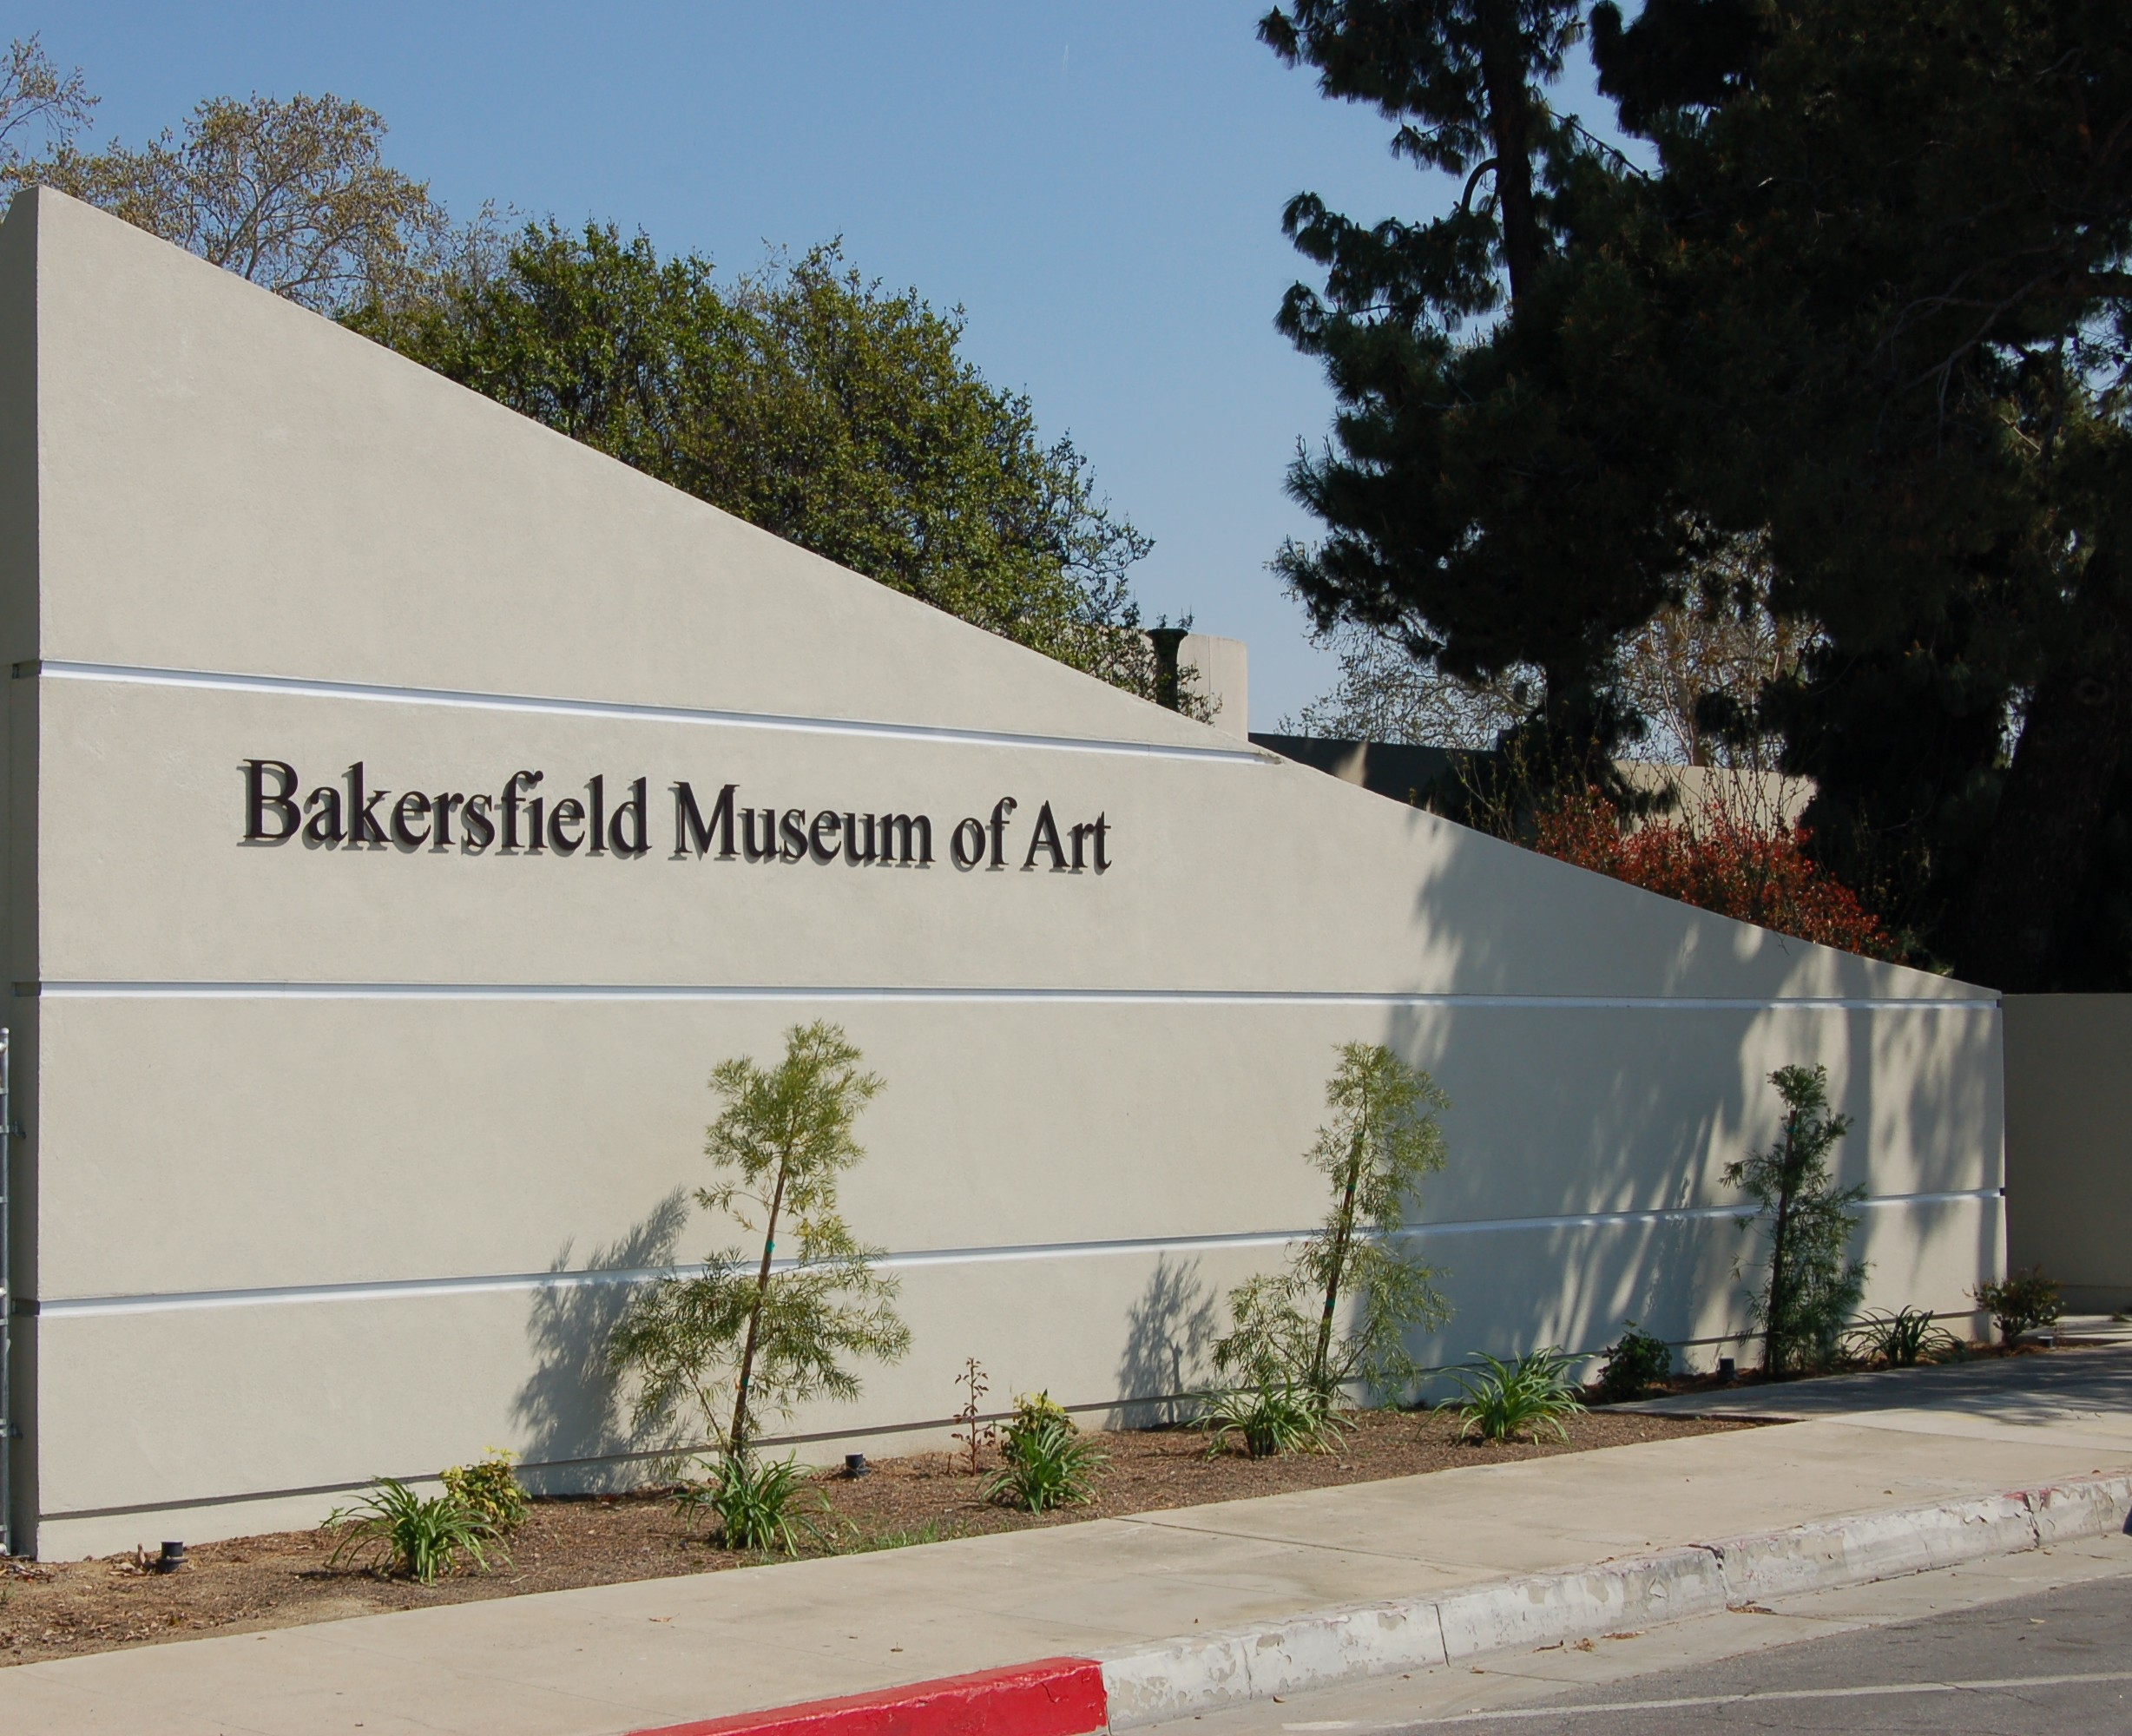 File:2011 Bakersfield Museum of Art Sign.JPG - Wikimedia Commons